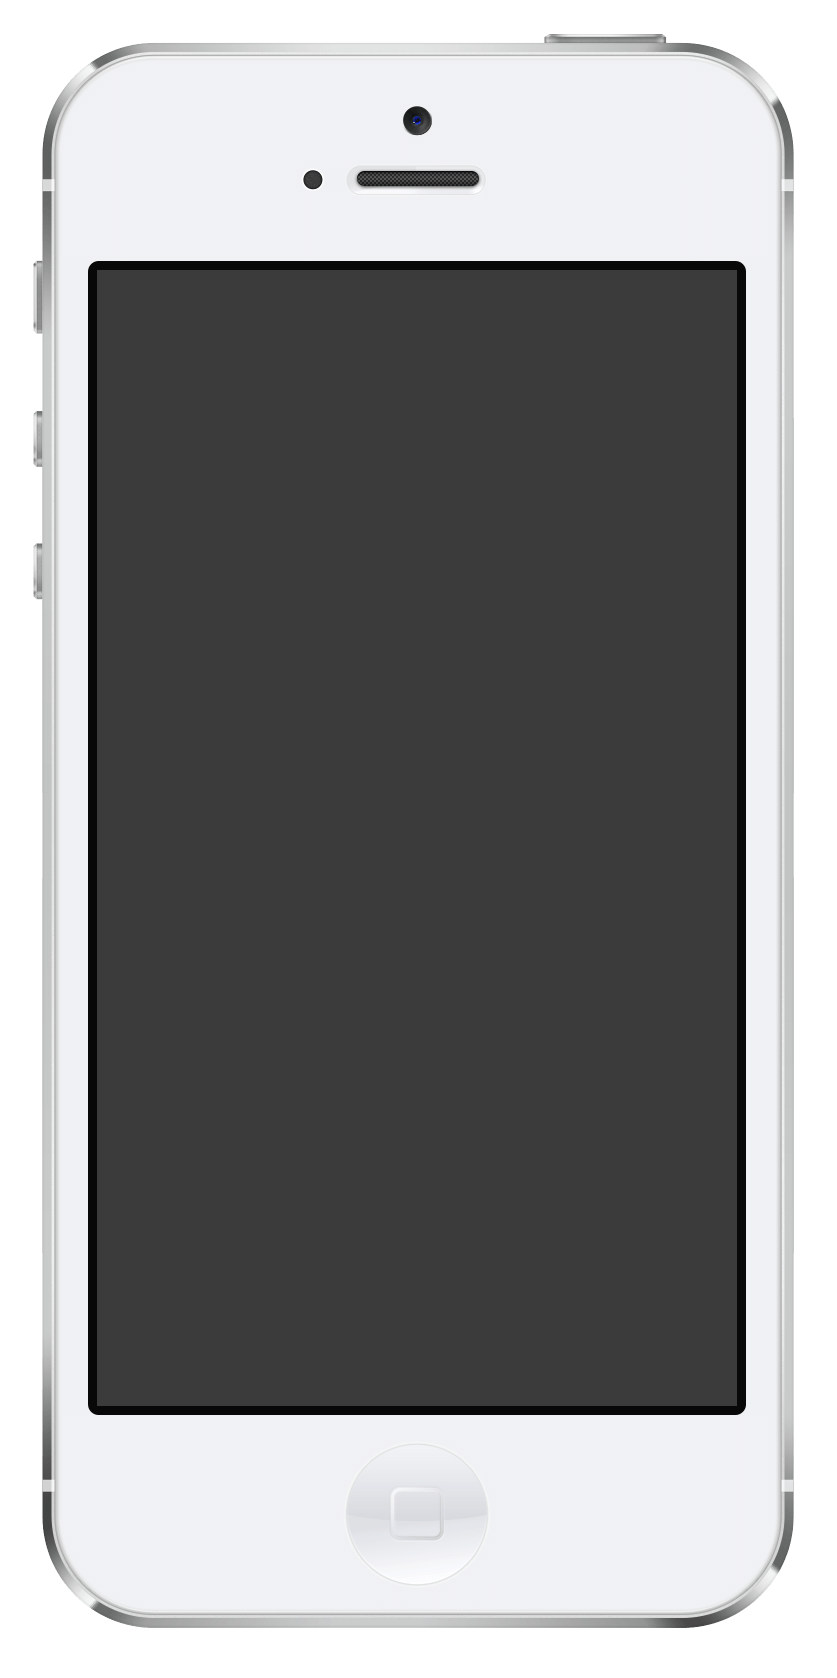 Download iPhone Free PNG photo images and clipart.📱